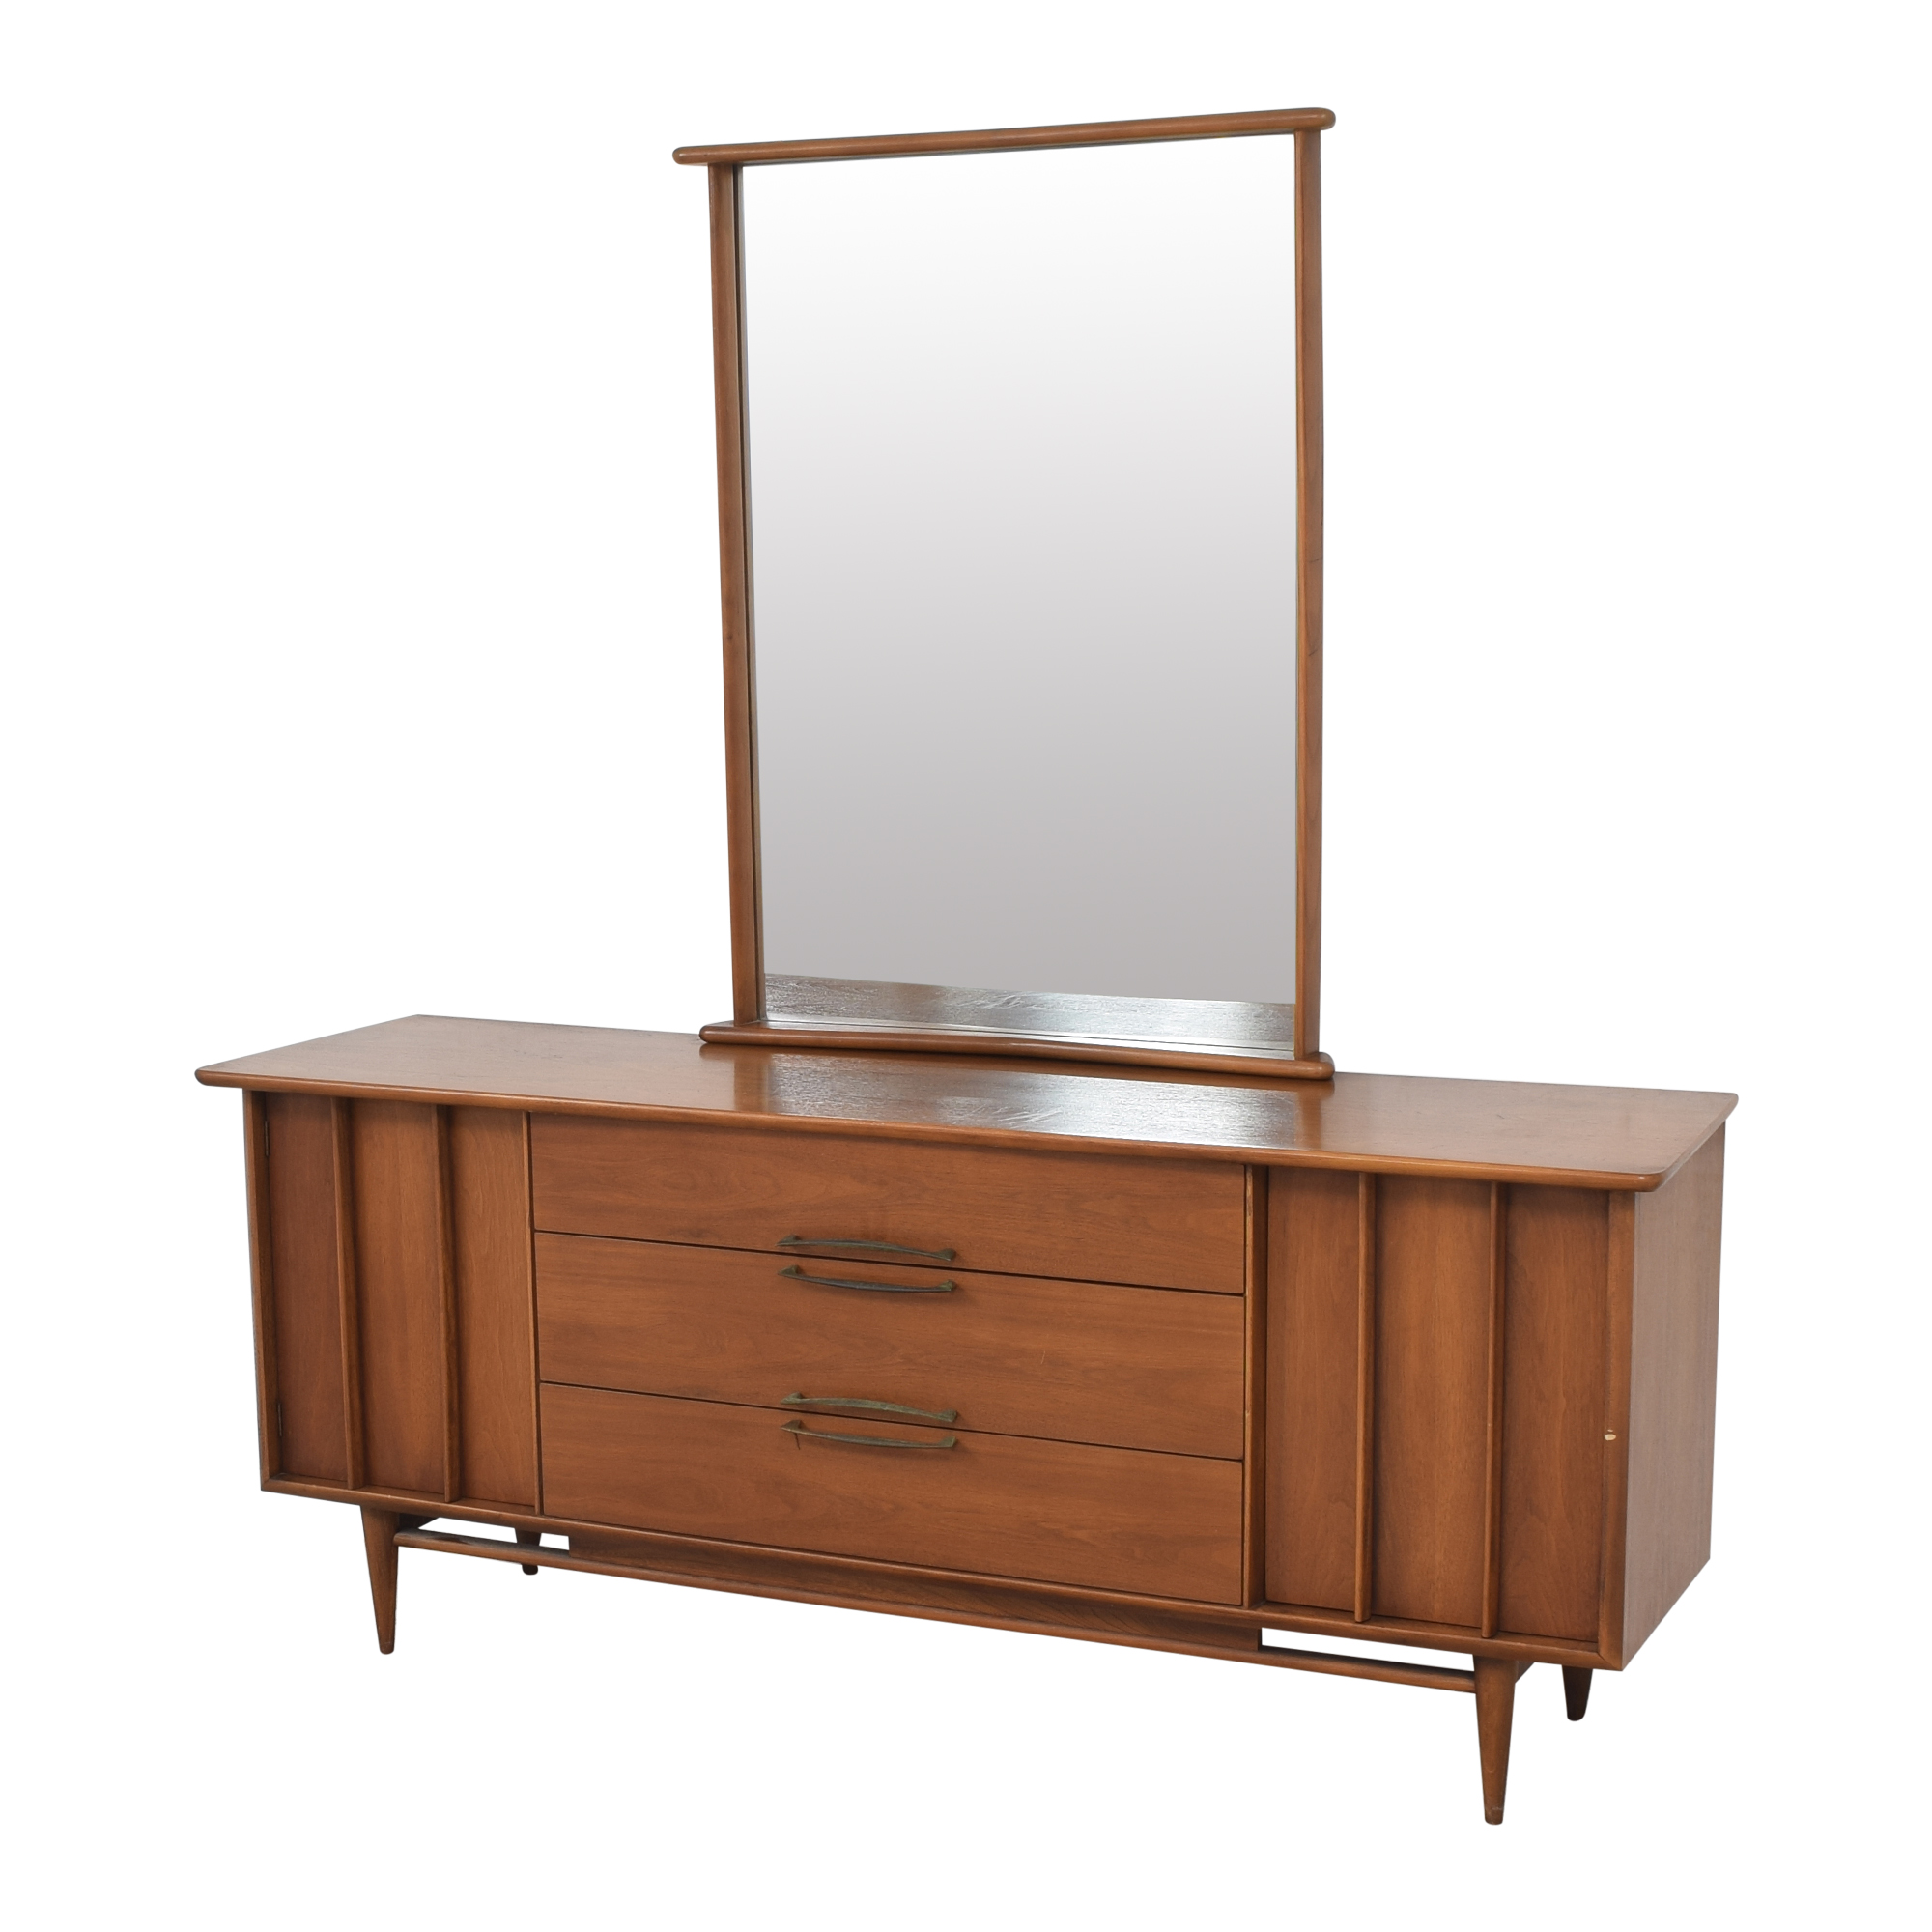 Kent Coffey Kent Coffey The Eloquence Dresser with Mirror nyc